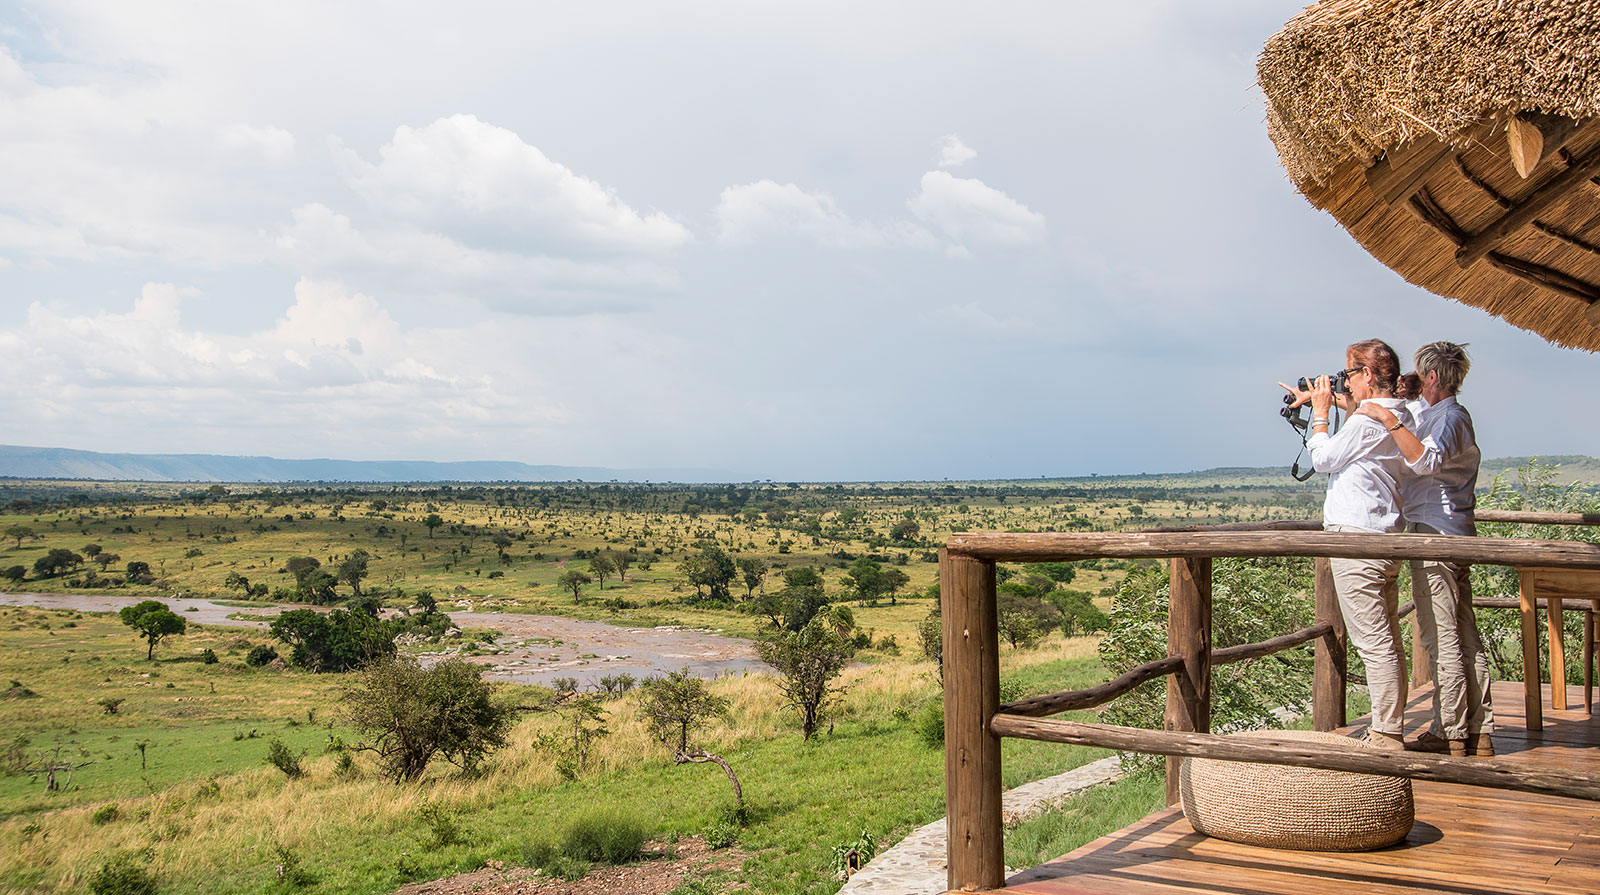 Mara River Post - Overlooking the River on 270°